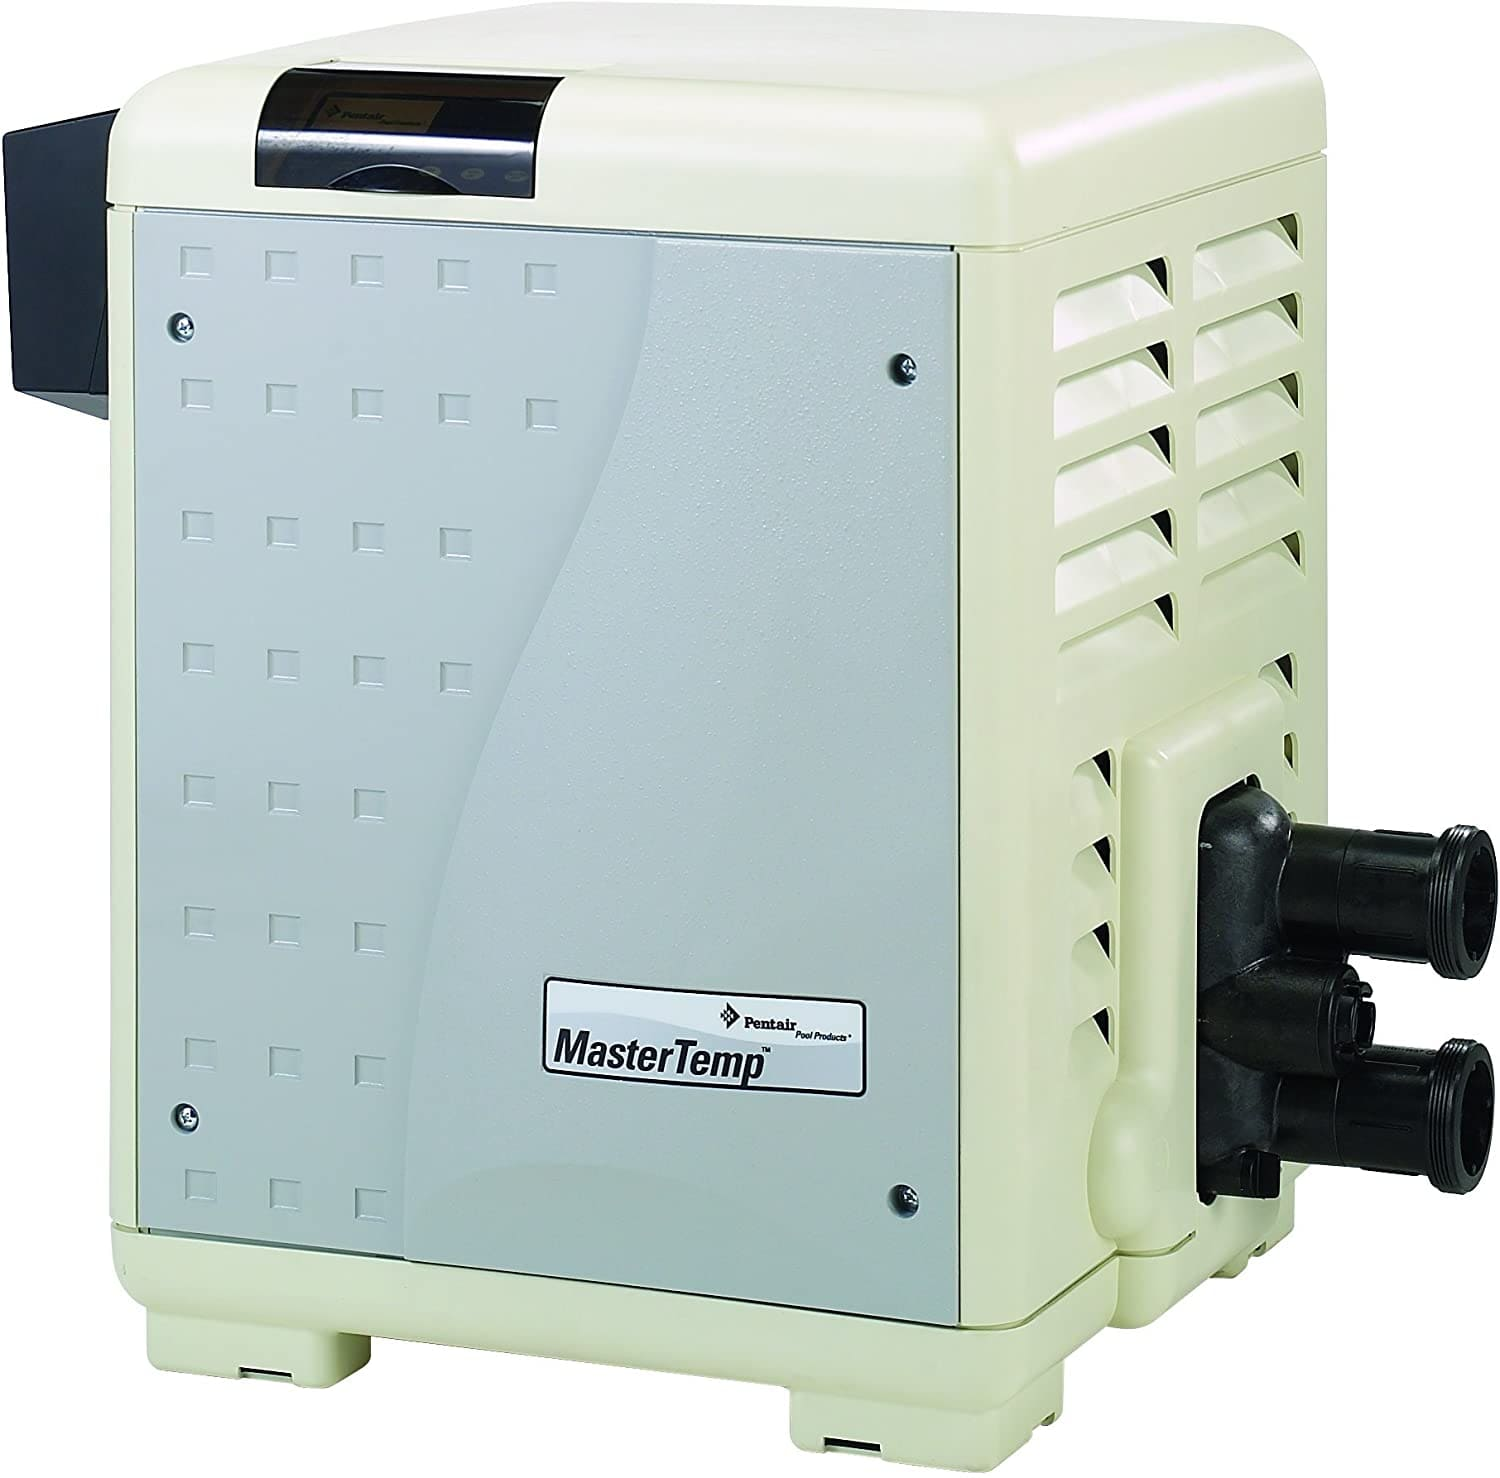 Pentair MasterTemp 250 - Natural Gas Pool Heater